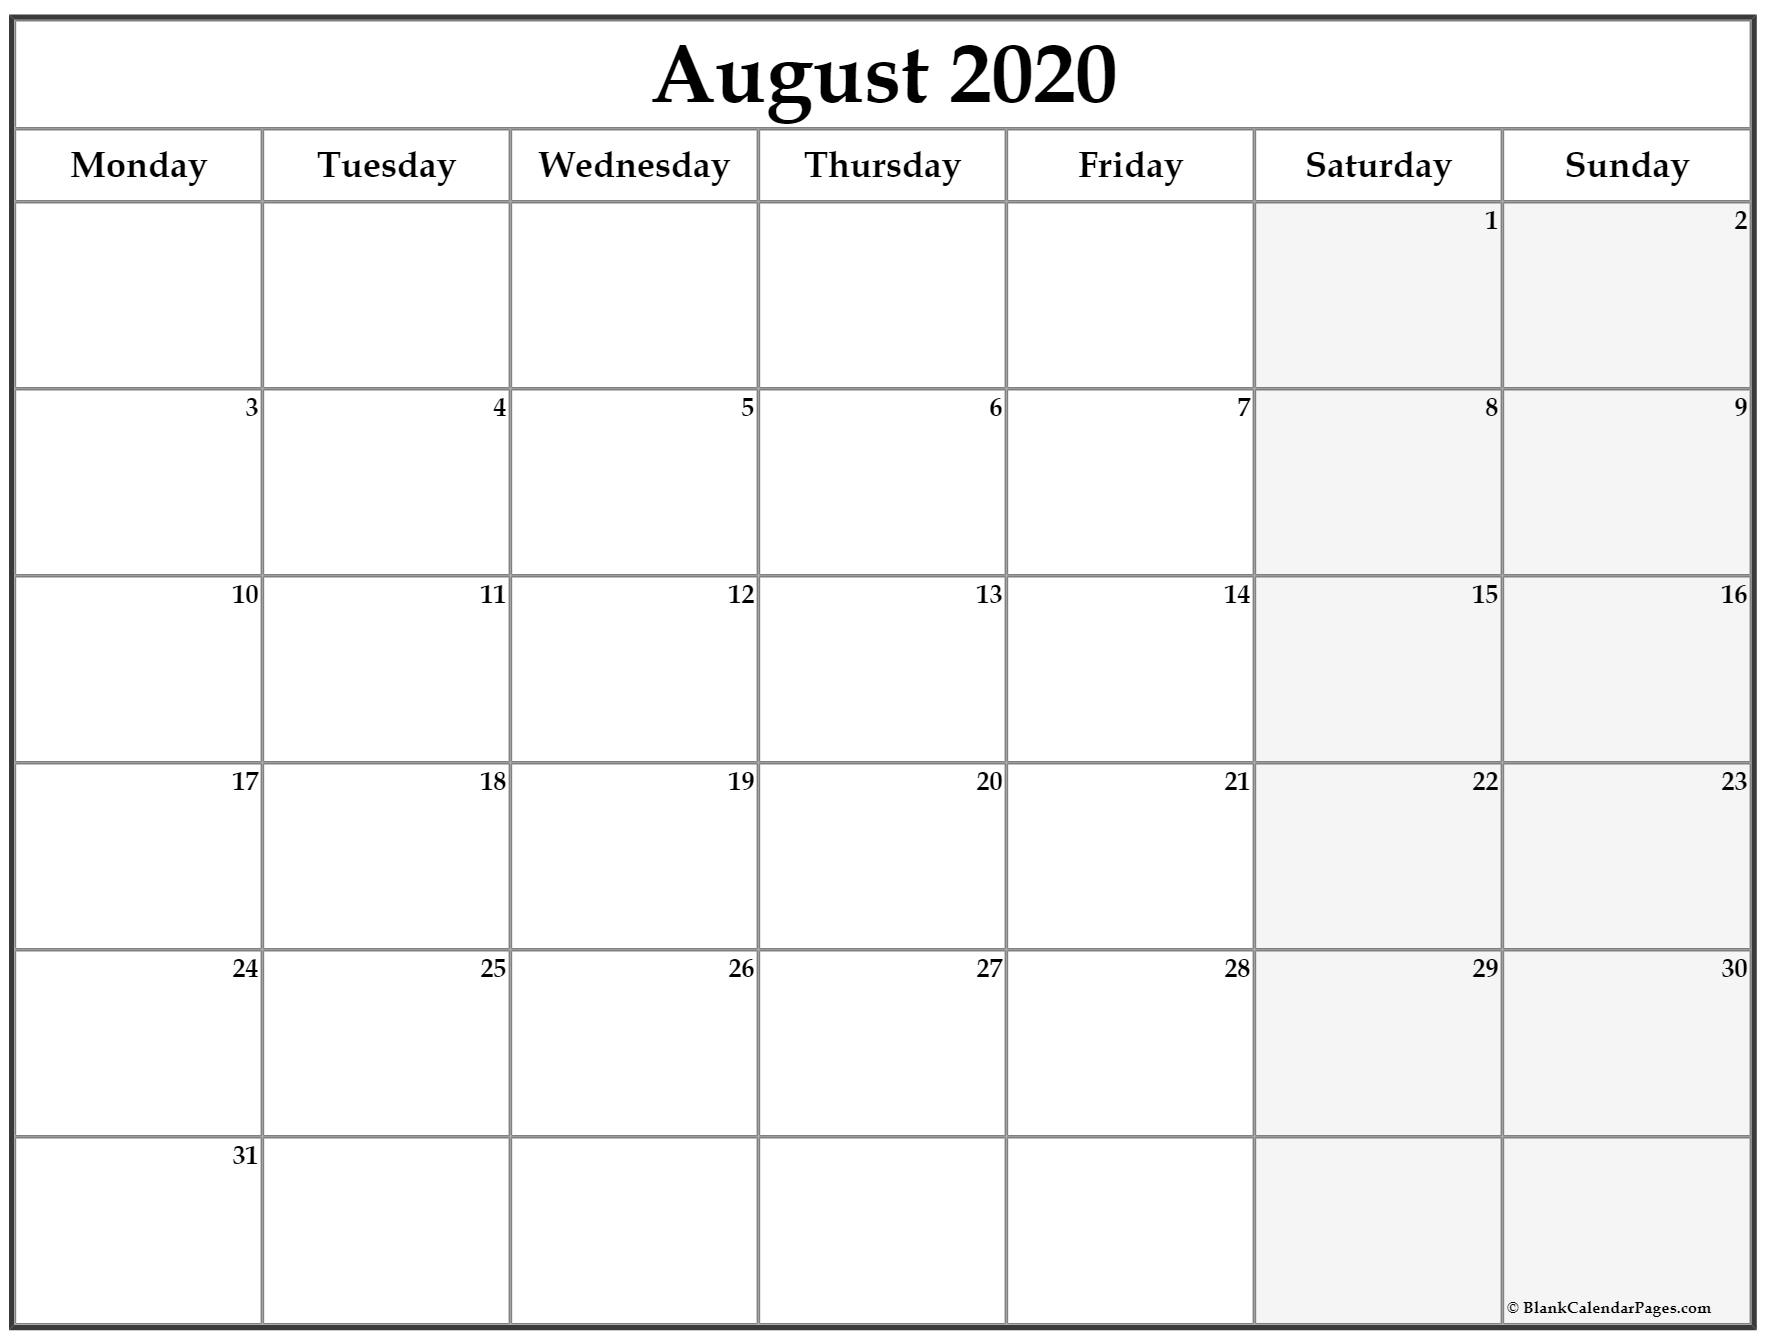 August 2020 Monday Calendar | Monday To Sunday regarding Sunday To Saturday Calendar 2020 Printable